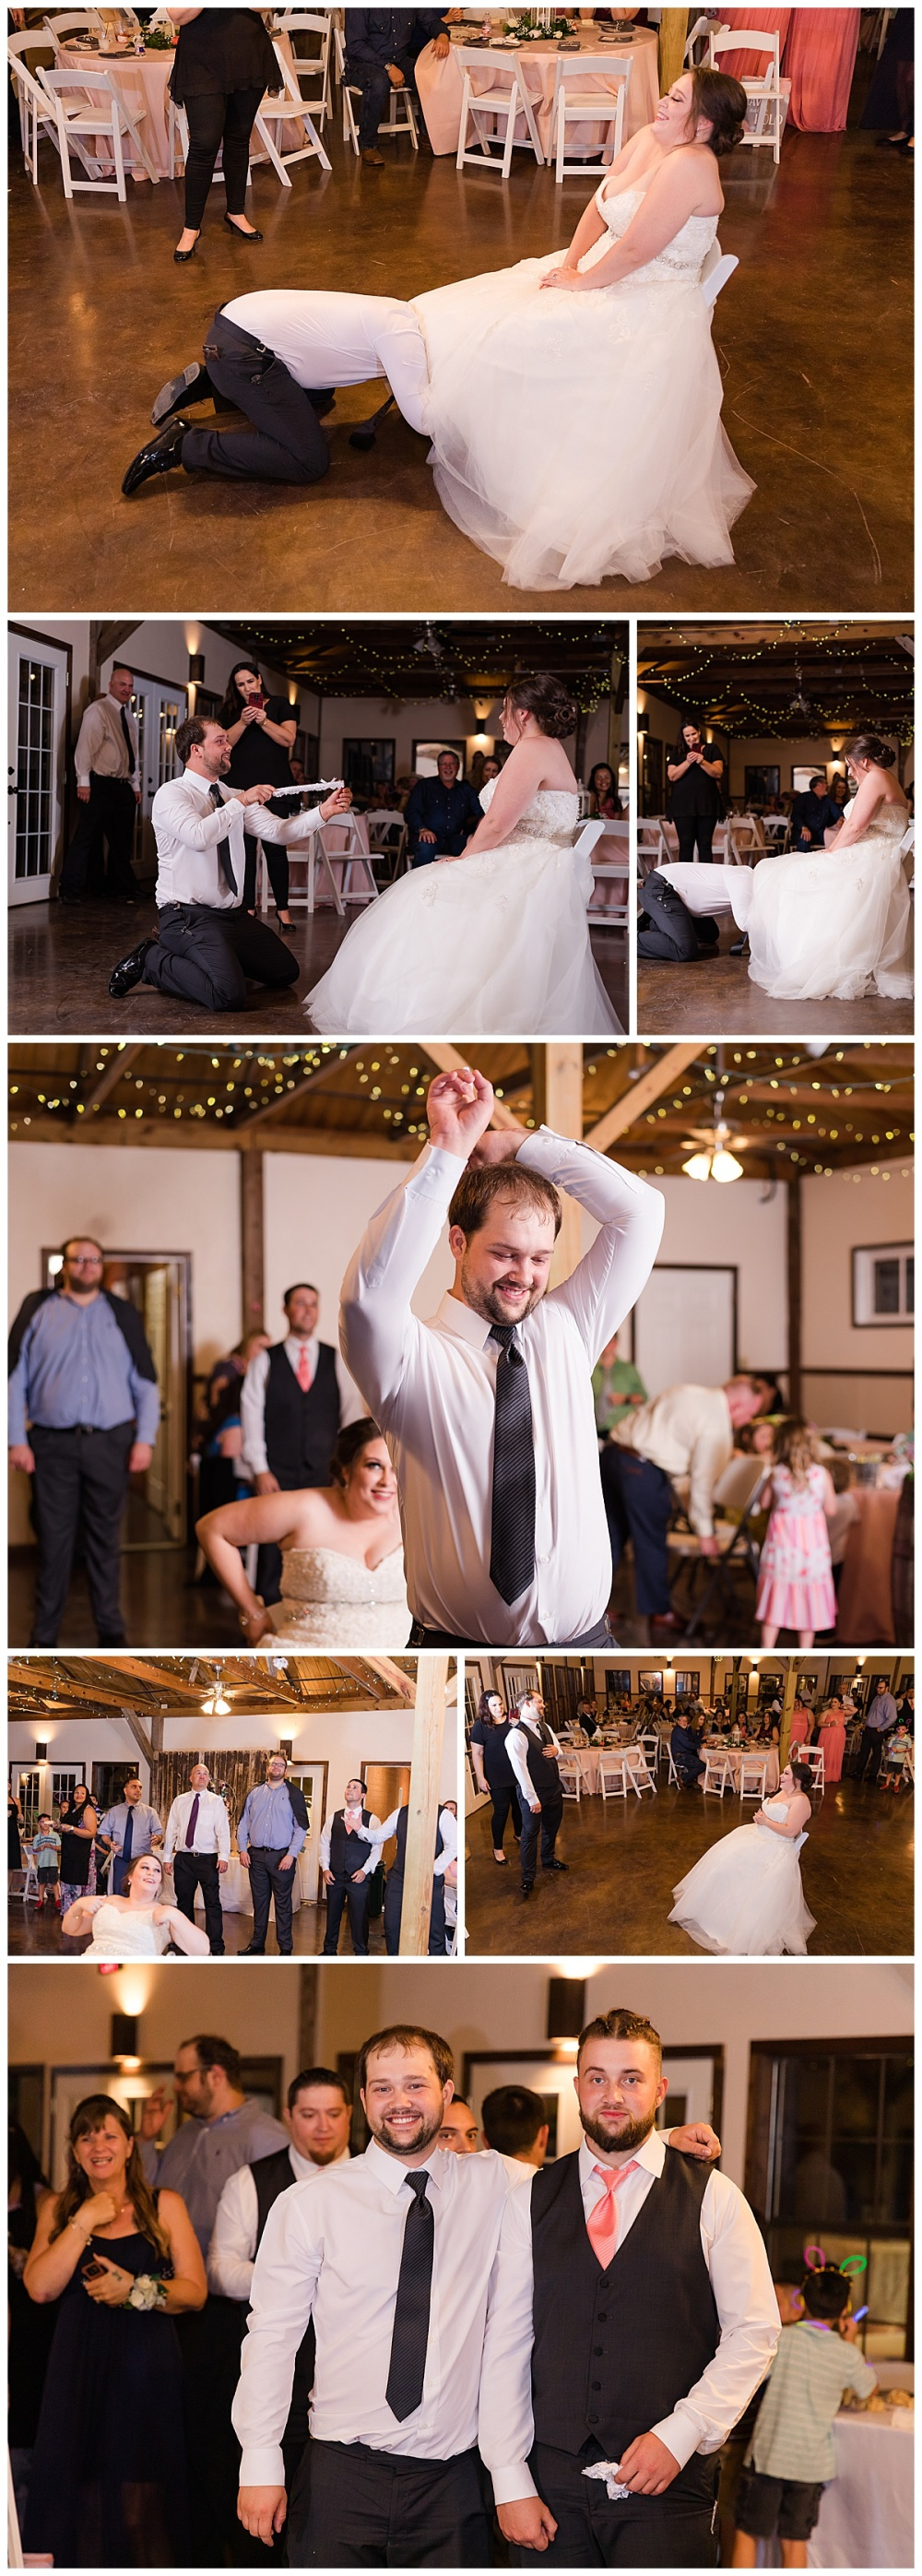 Michael-Tiffany-Wedding-New-Braunfels-Texas-Canyon-Lake-Cabins-and-Cottages-Carly-Barton-Photography_0056.jpg